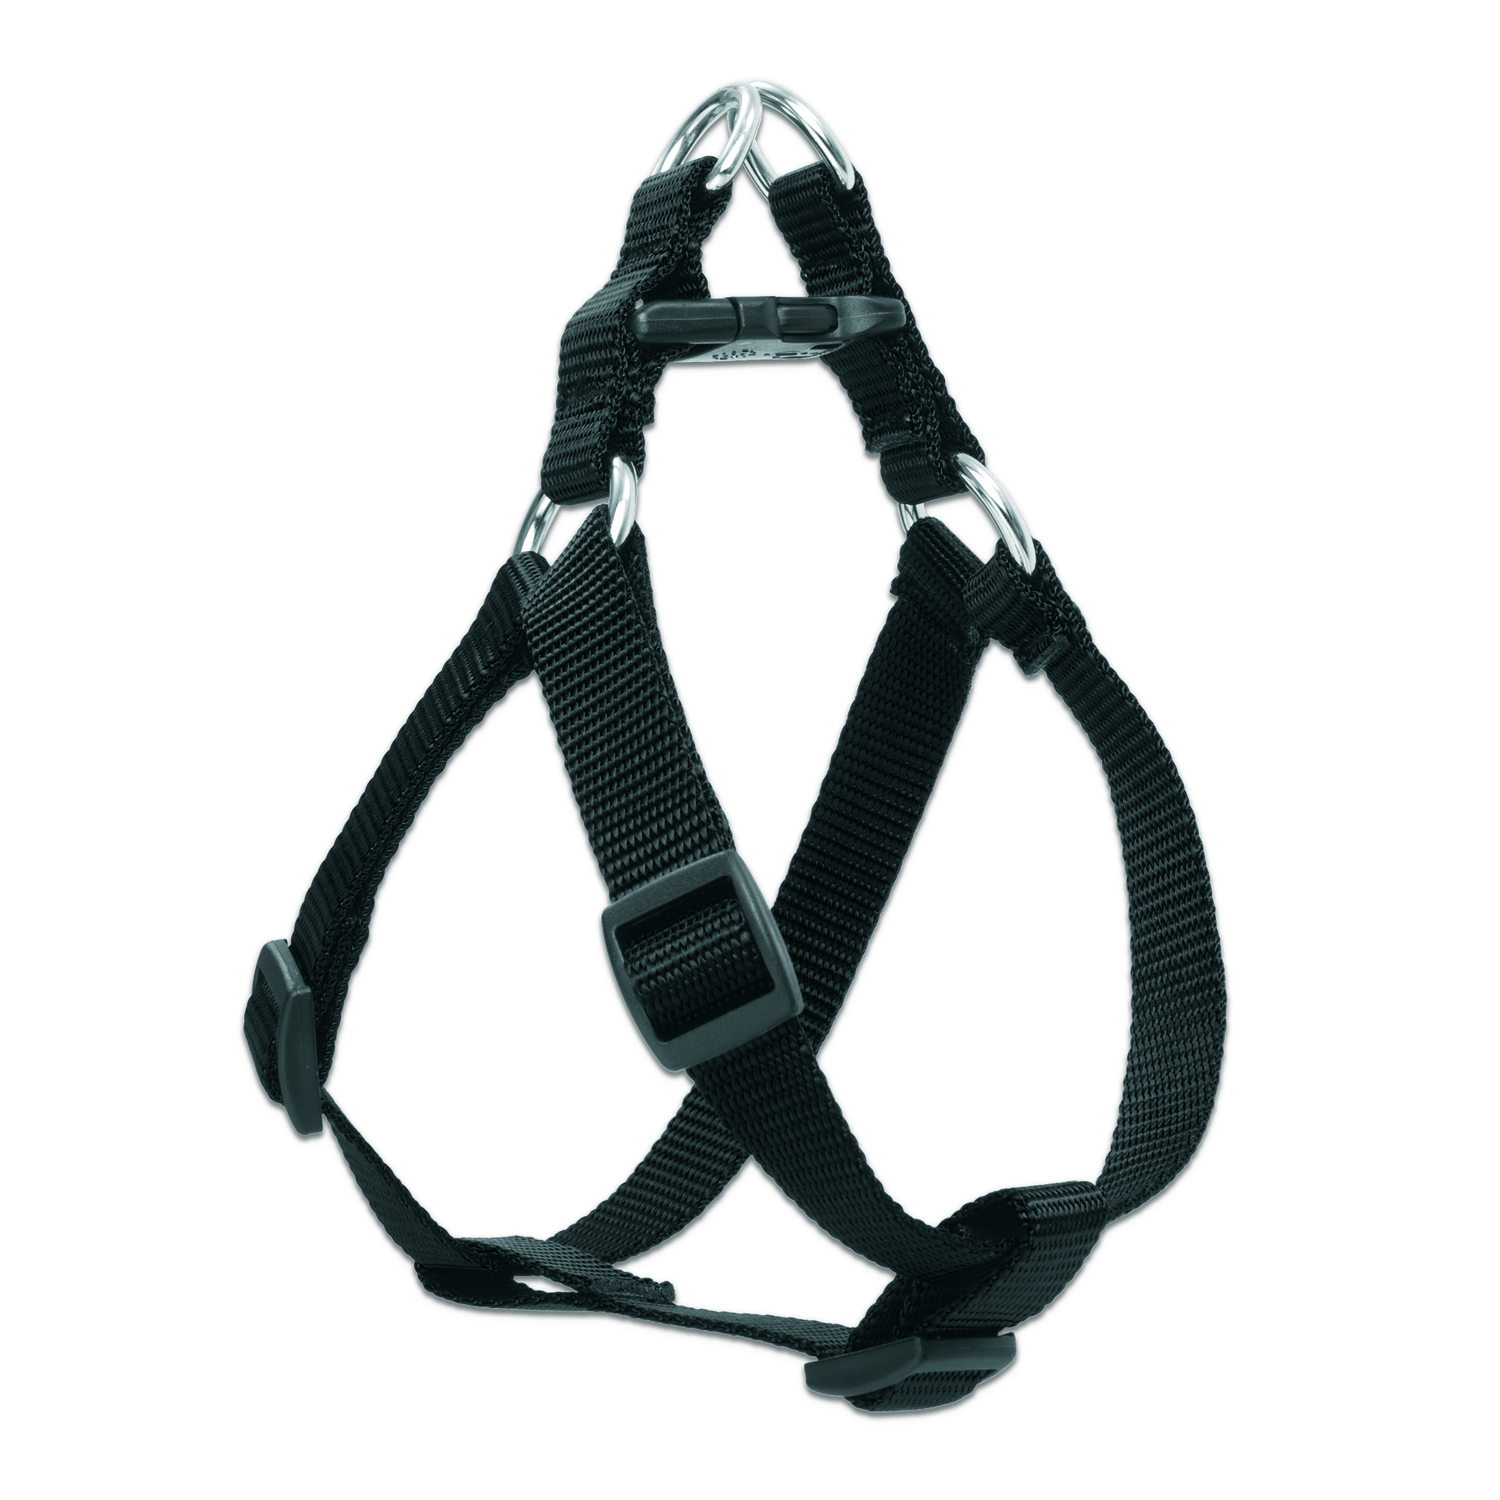 Lupine Pet  Basic Solids  Black  Nylon  Dog  Harness